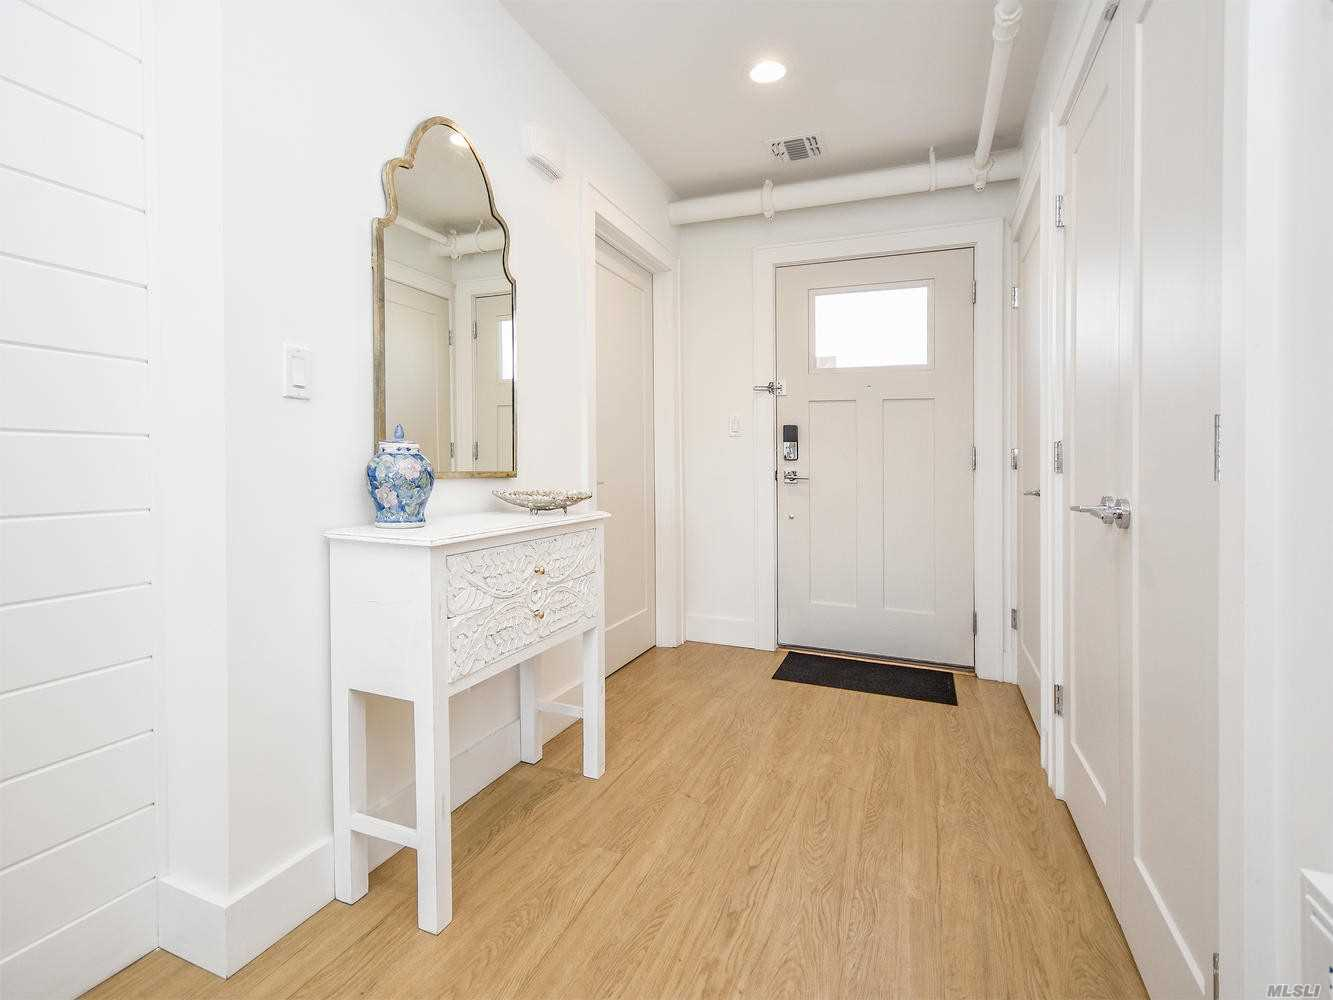 Newly Renovated Building Located In The Heart Of Glen Head. Features City Chic In The Suburbs Loft-Style Apartments. Kitchen And Bath Is Sophisticated And Modern. Full Current Credit Report And References Required. NTN Background Report Required. $35 Fee Per Adult.  Small Dog May Be Ok With Additional Security On A Case By Case Basis.